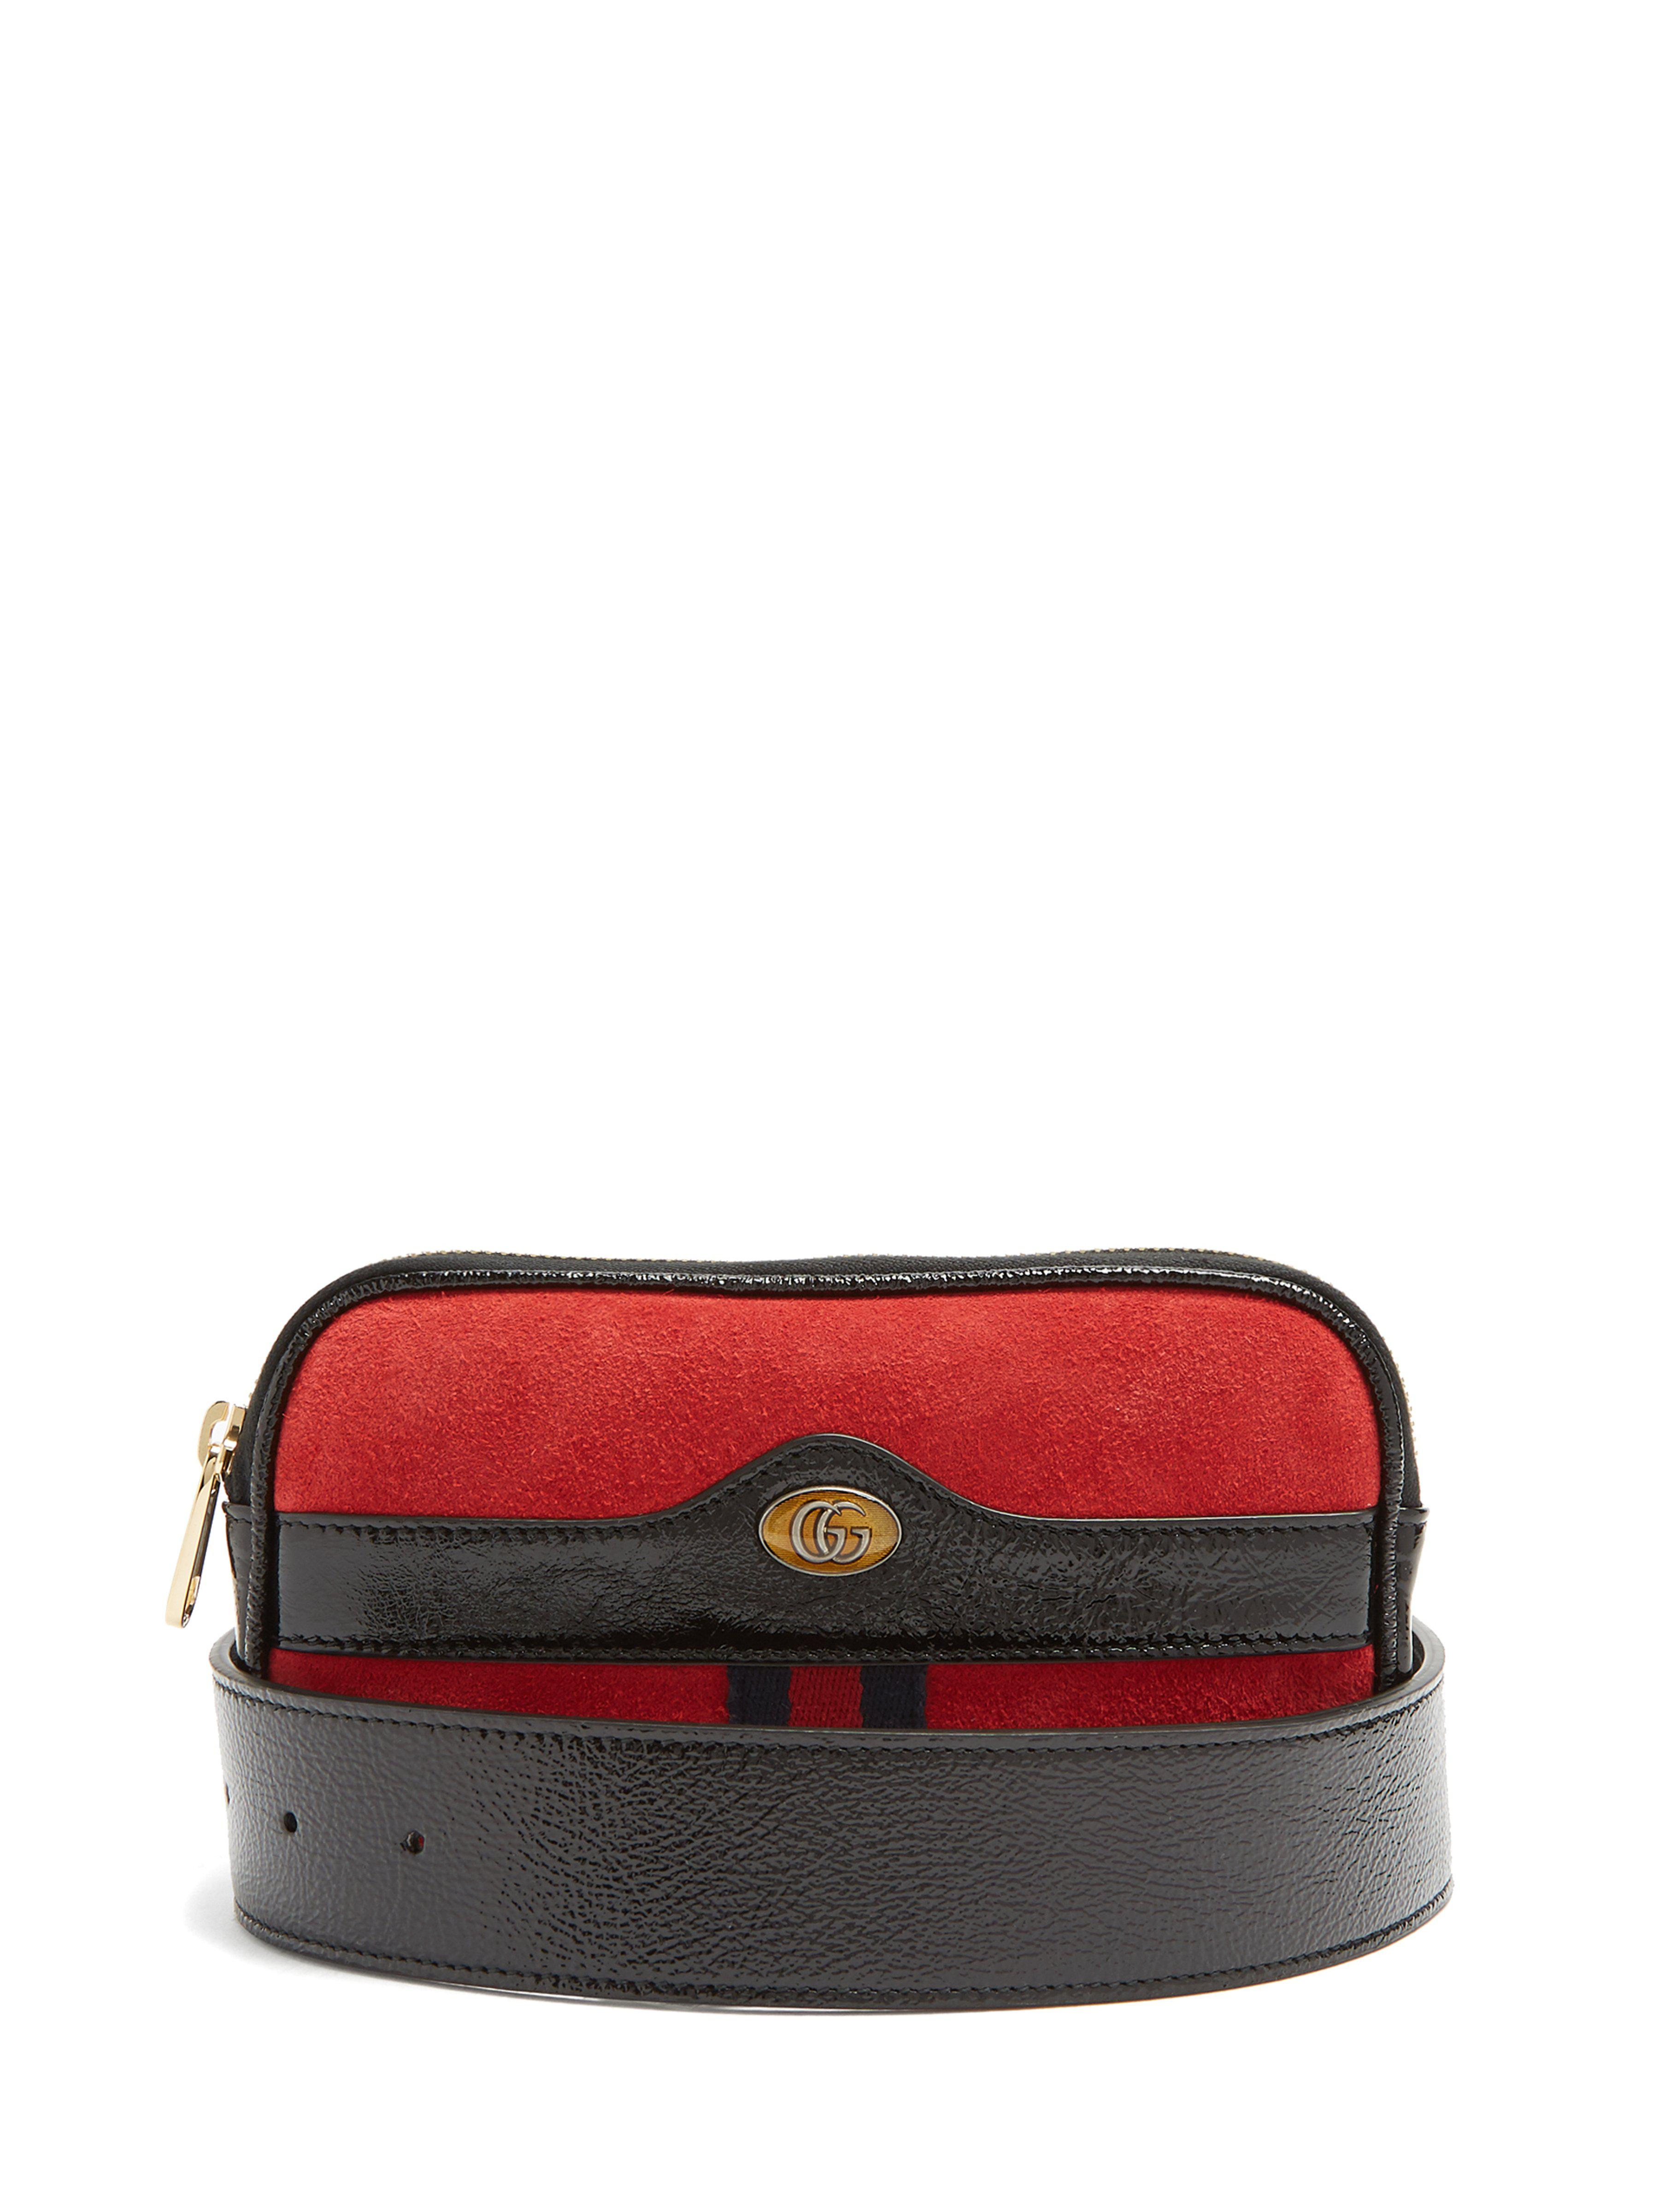 74c7dd71c16 Gucci Ophidia Small Suede Belt Bag in Red - Lyst